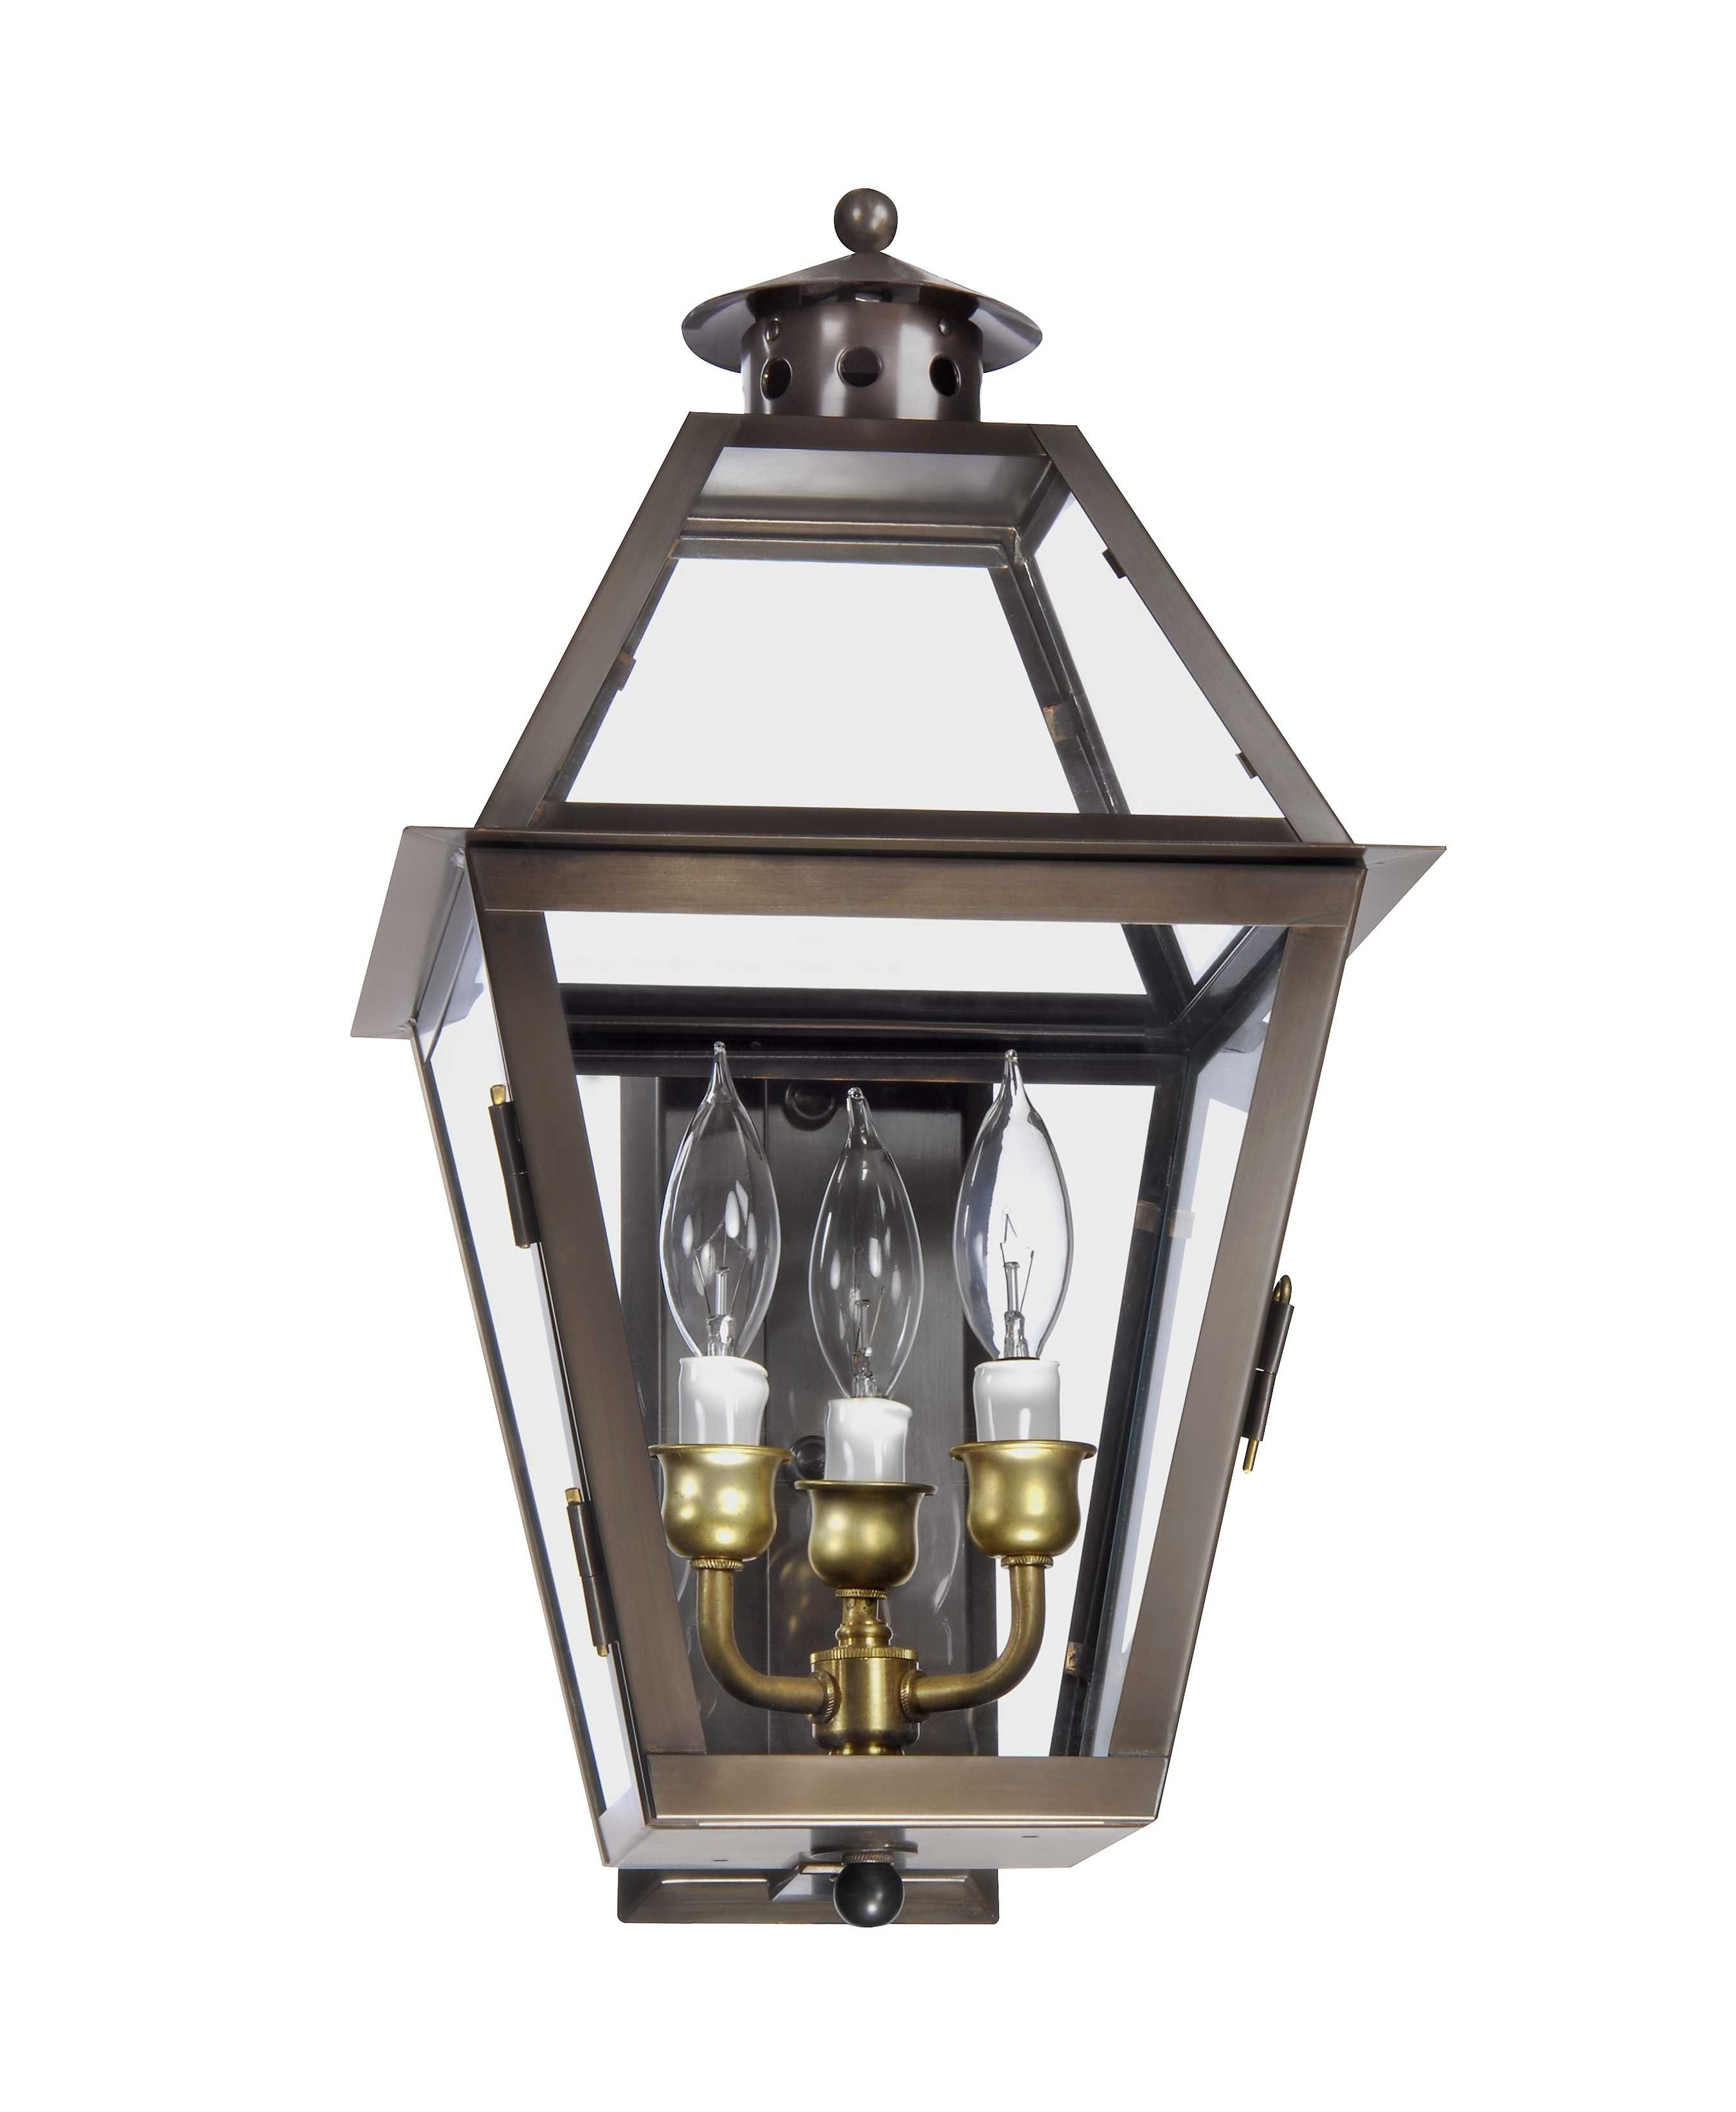 Outdoor Lanterns | Copper Exterior Lighting - Lantern & Scroll with Outdoor Lanterns On Stands (Image 12 of 20)